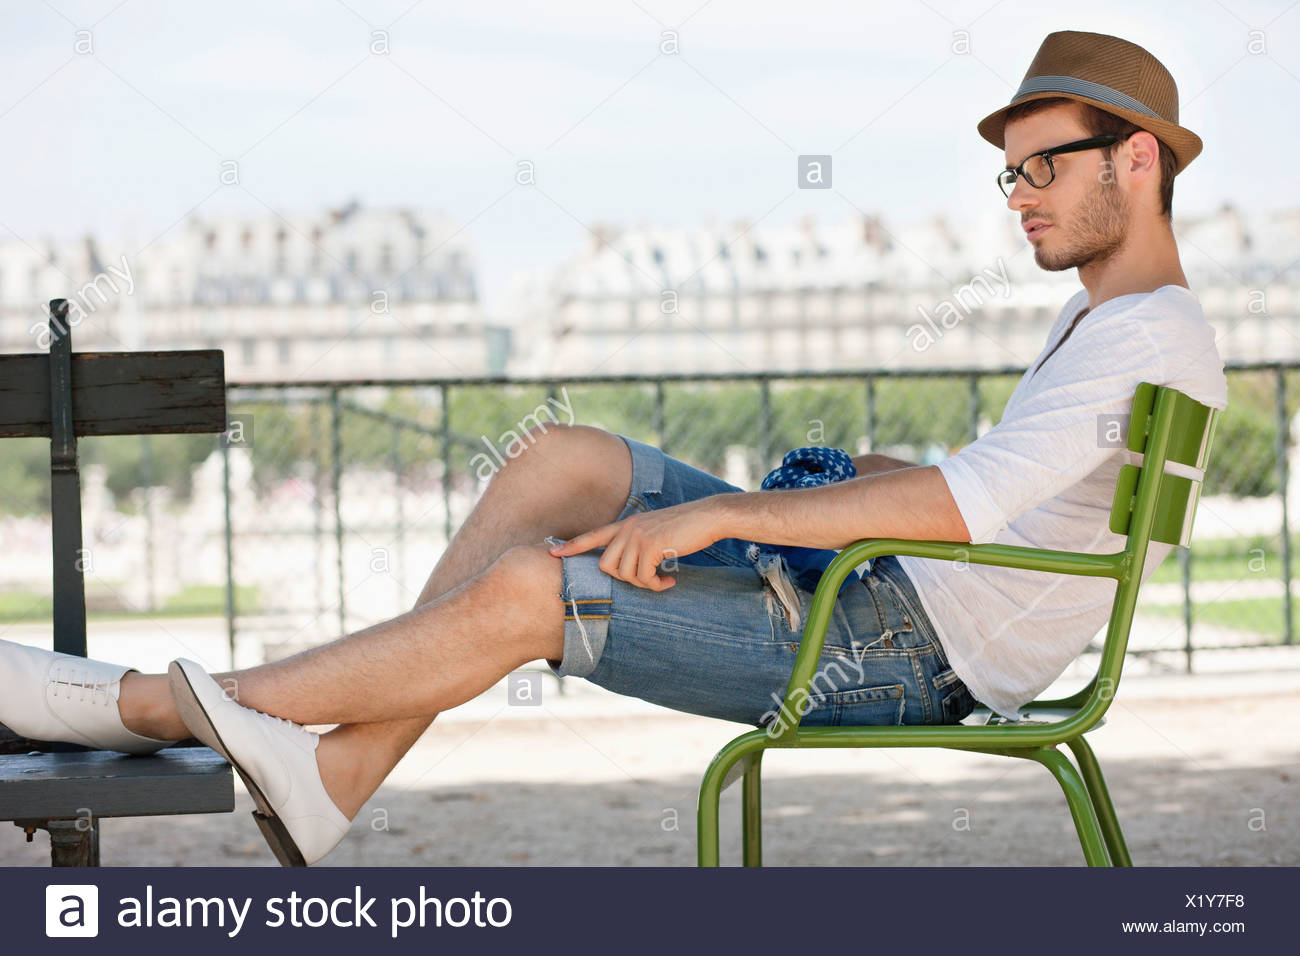 Man resting in a chair, Jardin des Tuileries, Paris, Ile-de-France, France - Stock Image